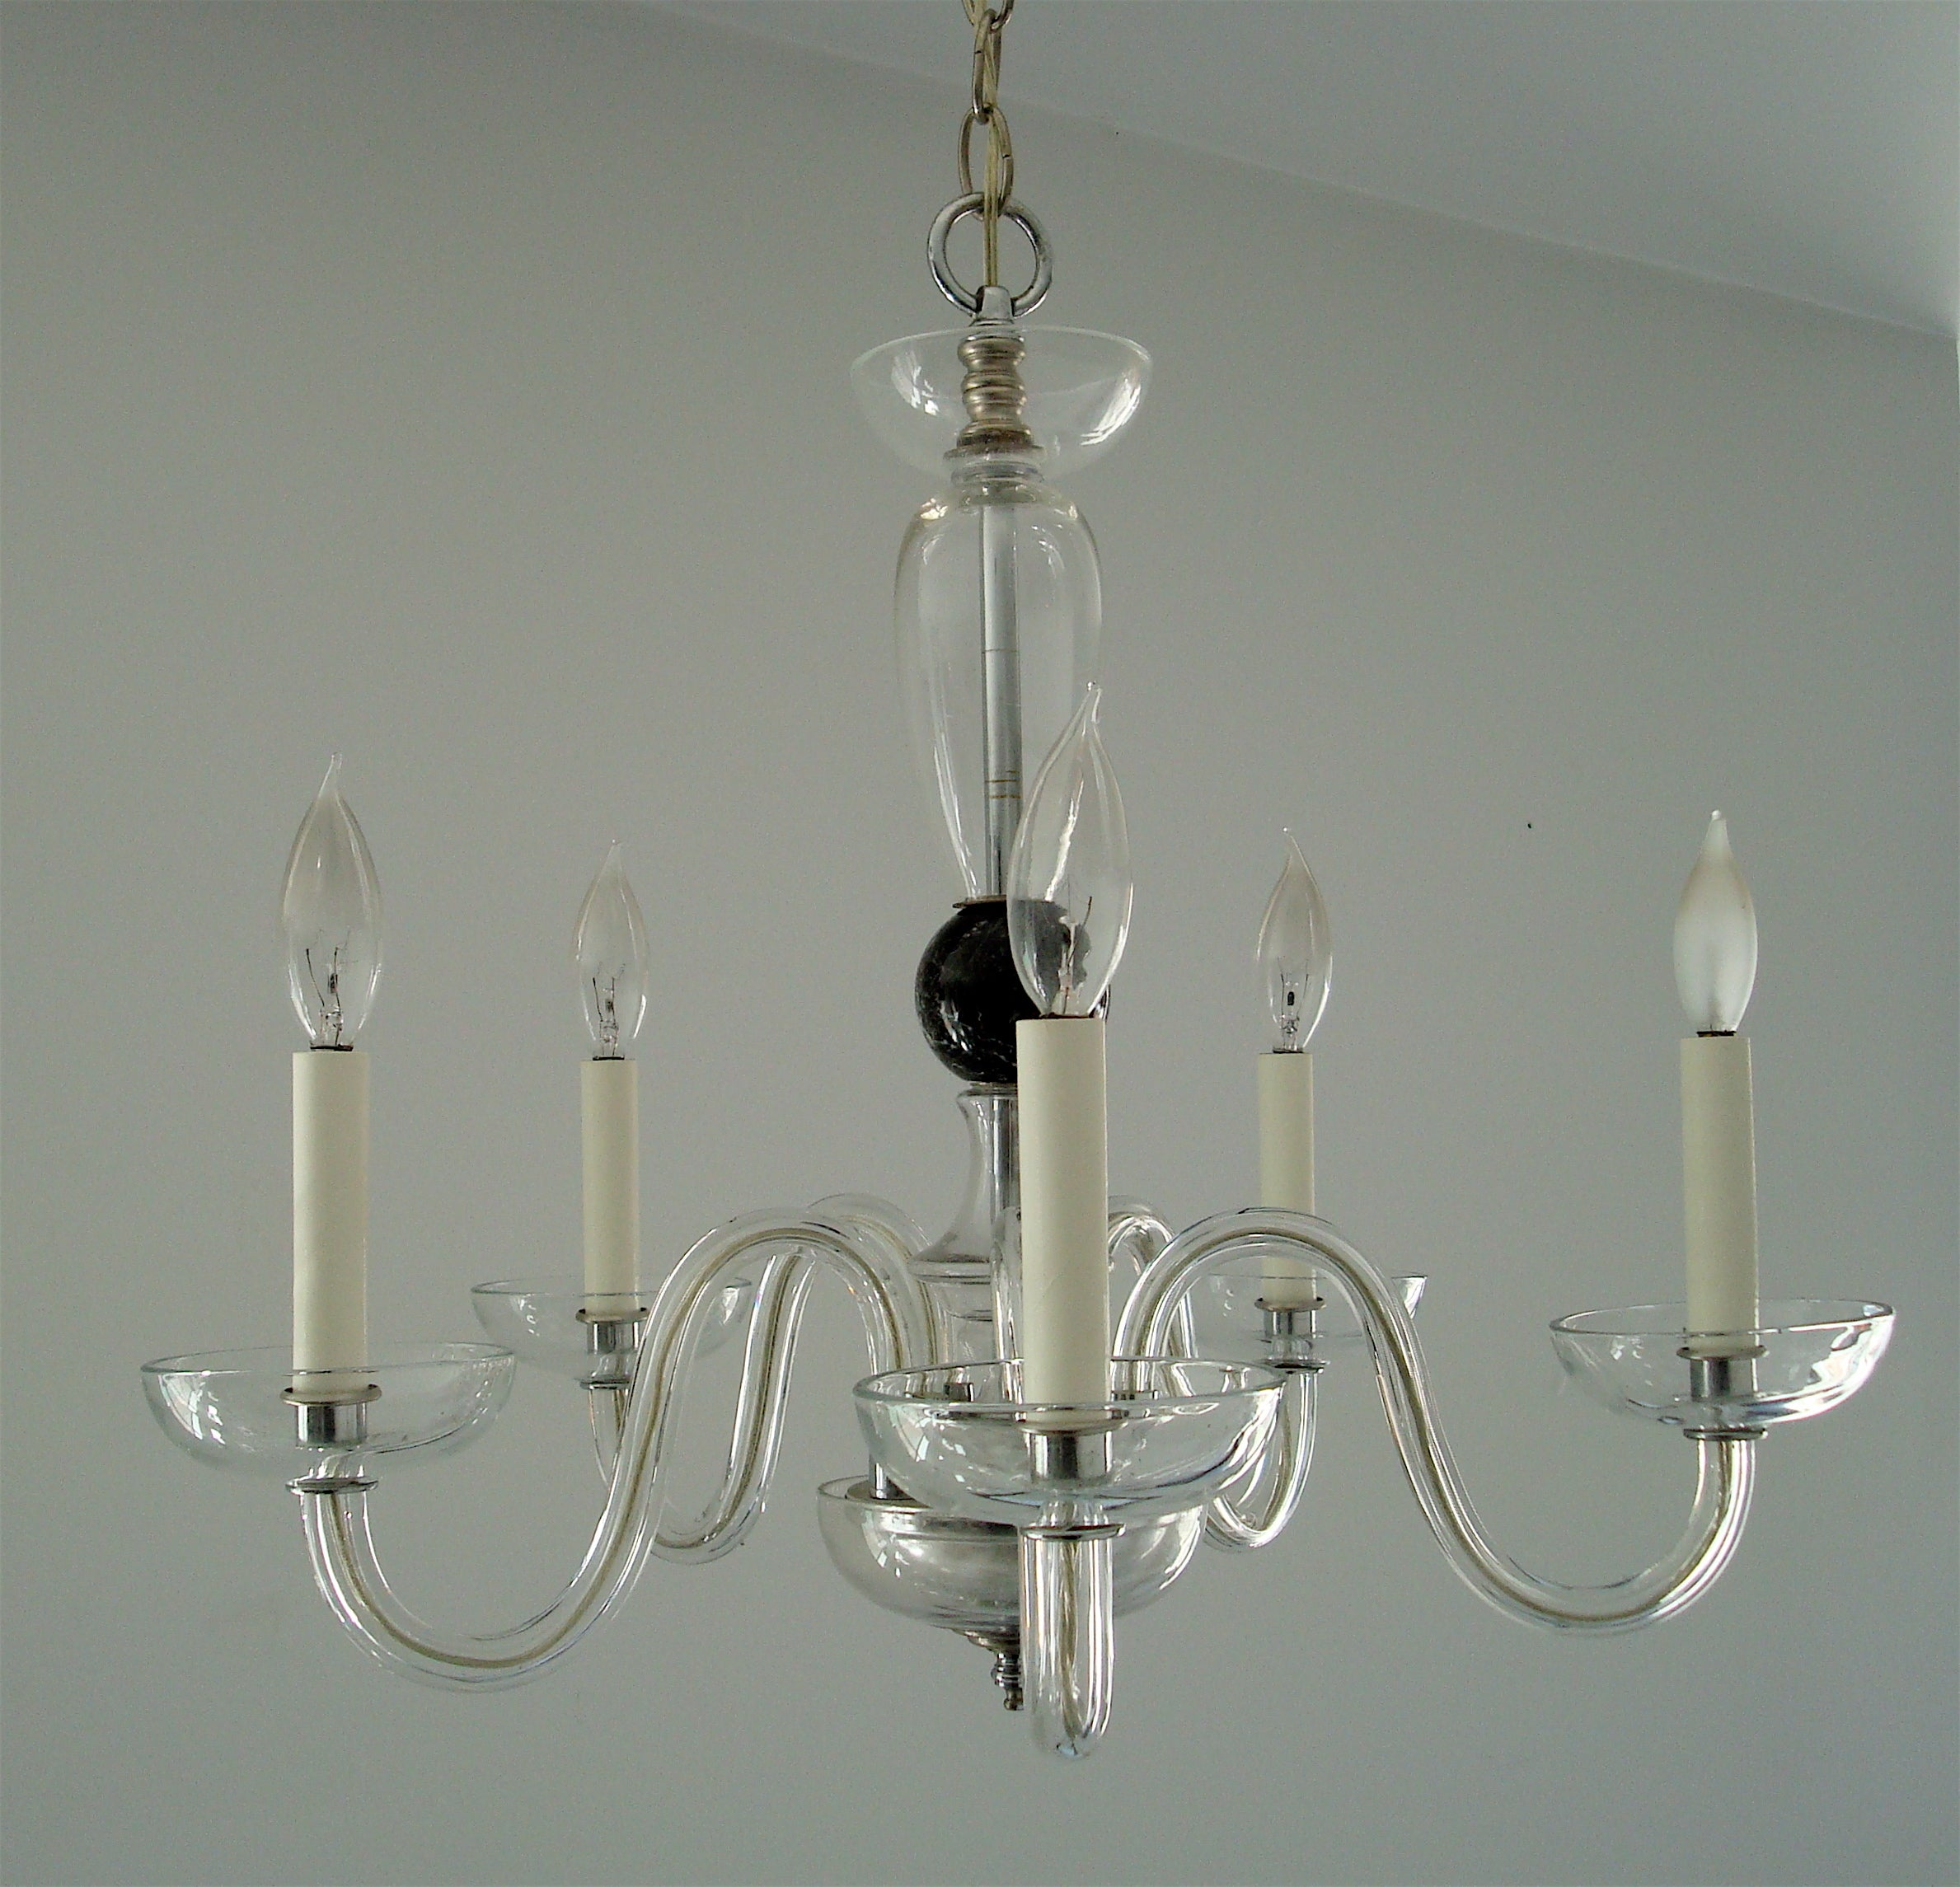 size dining chandelier crystal with additional ebay style and otbsiu of refinish beautiful entry brass room glass milk for modern chandeliers lighting cool antique full light extraordinary vintage